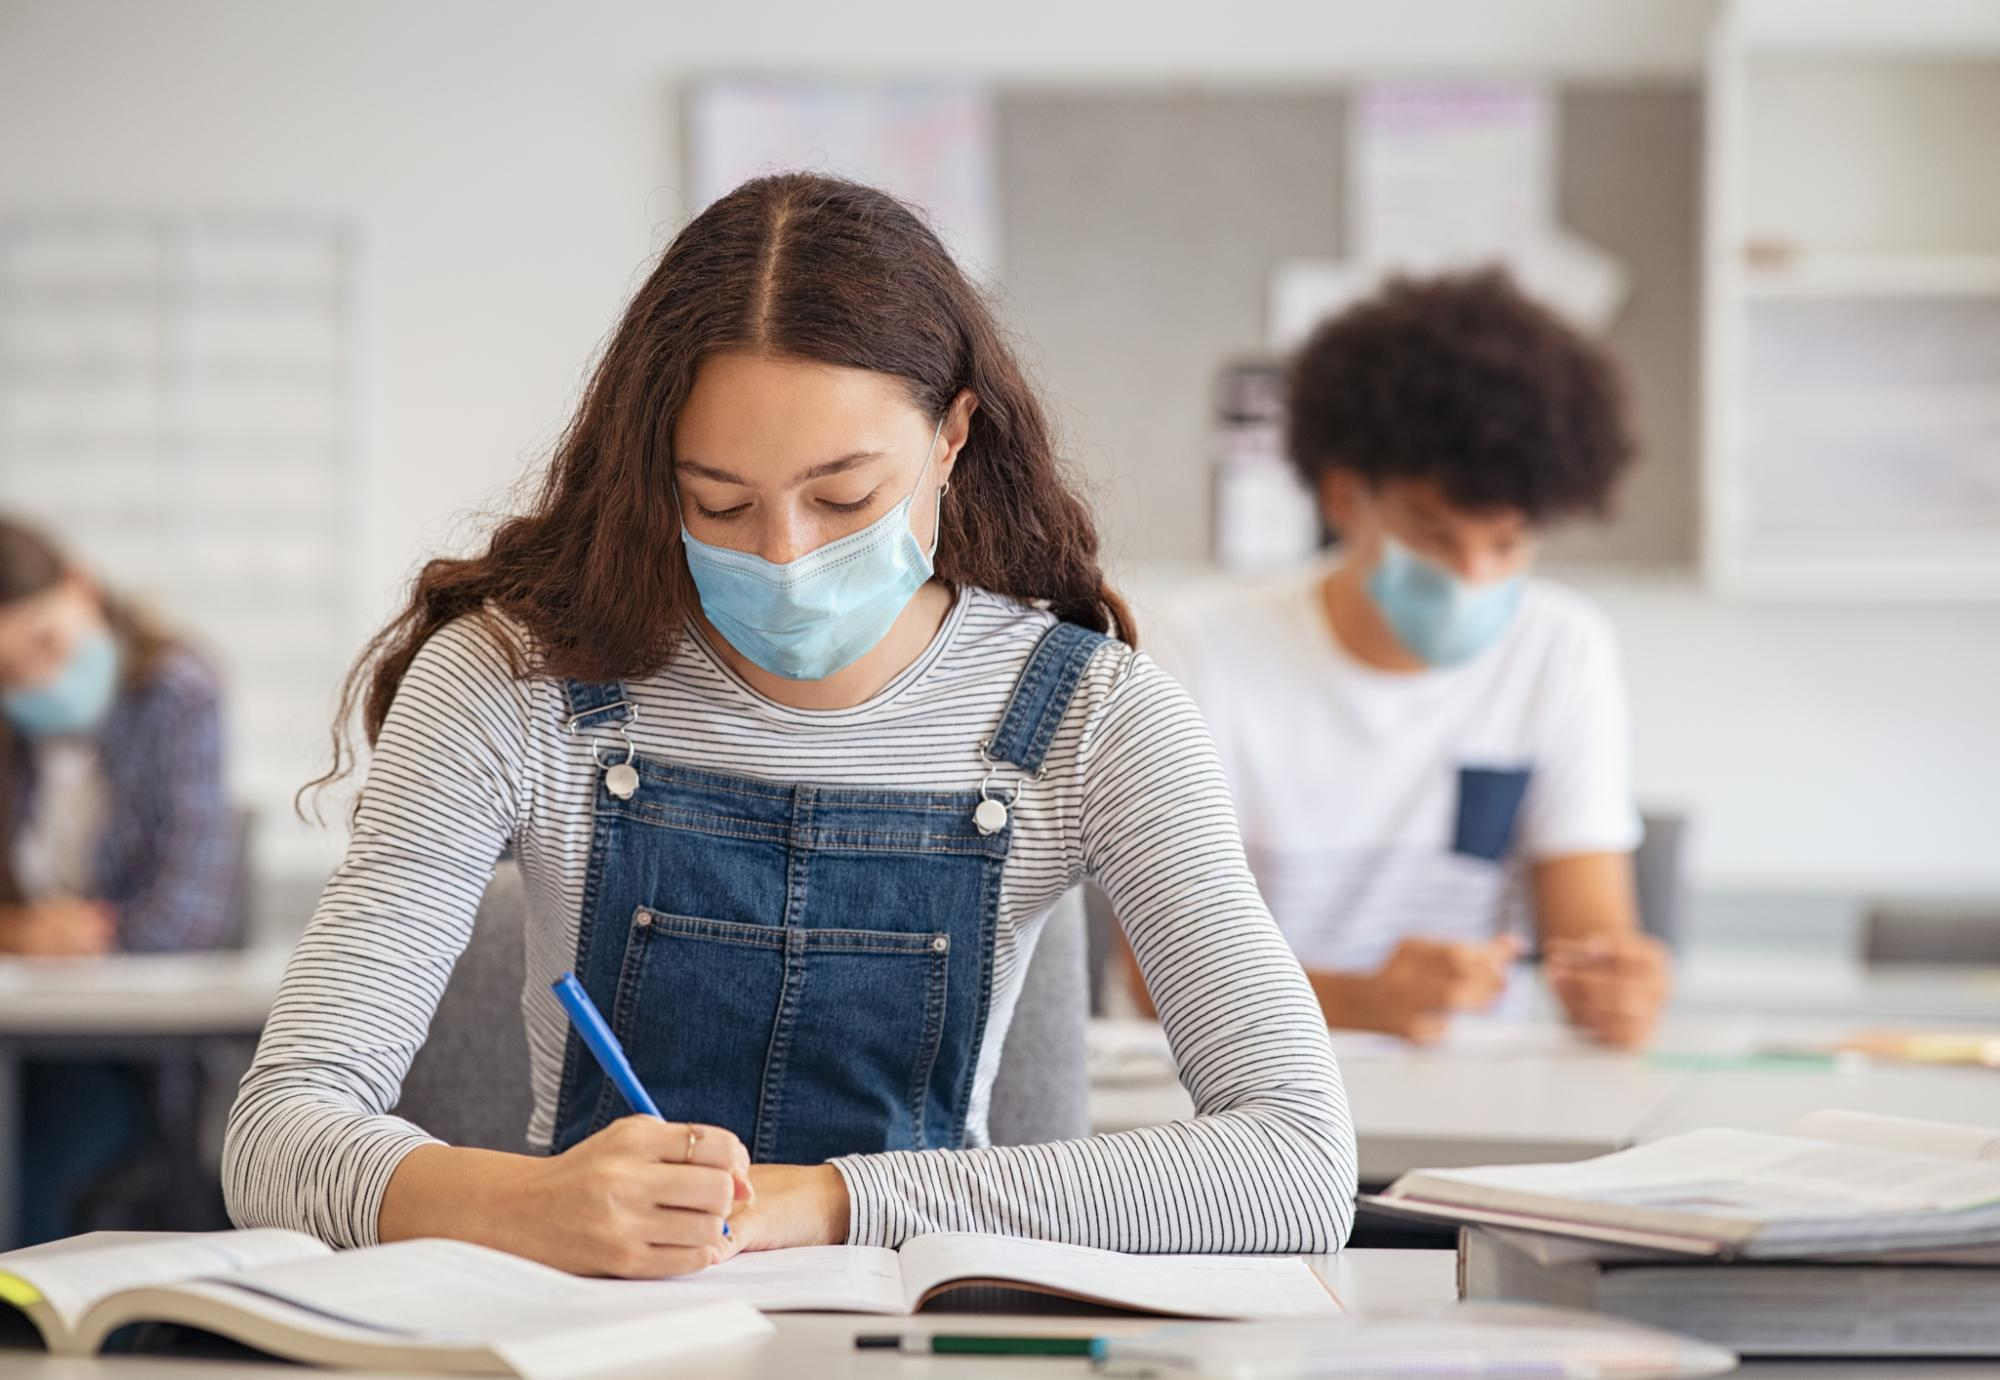 High school or college age girl in mask working at her desk